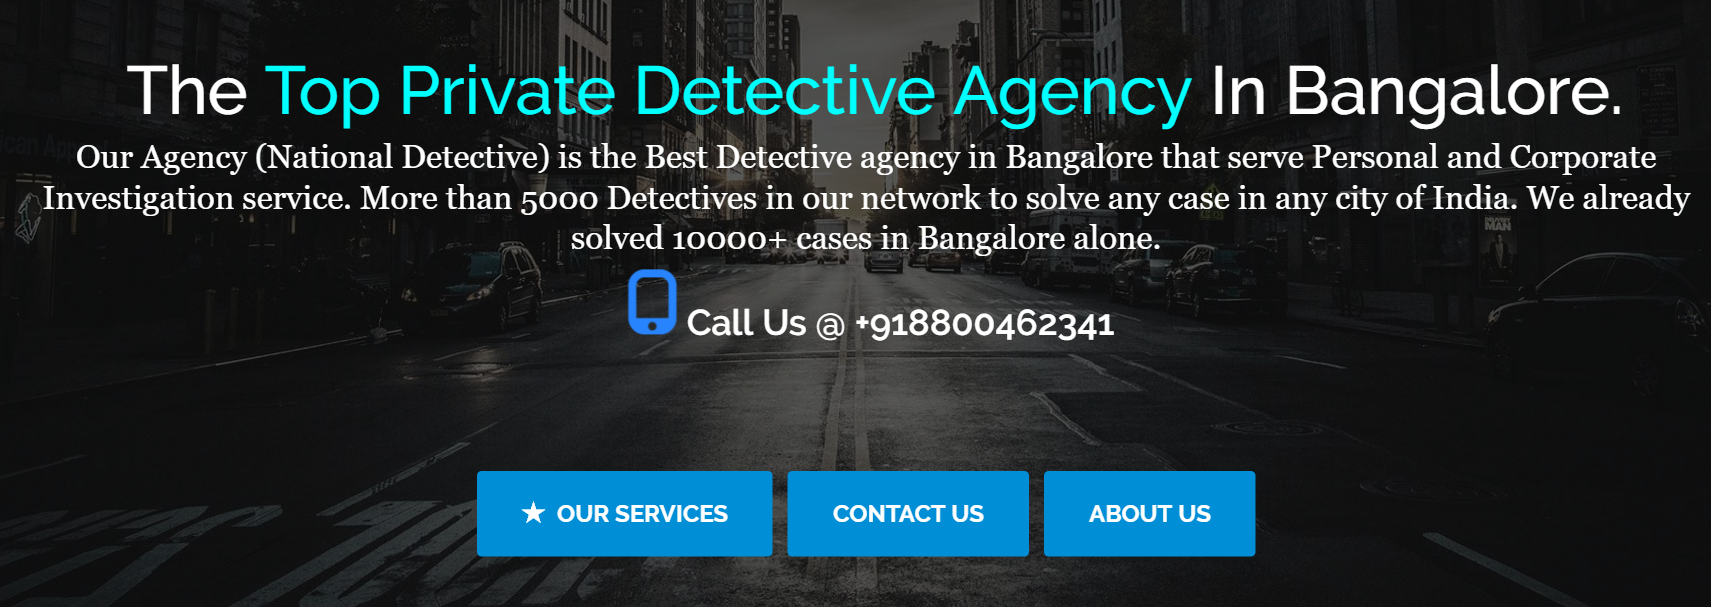 private detective agency Bangalore